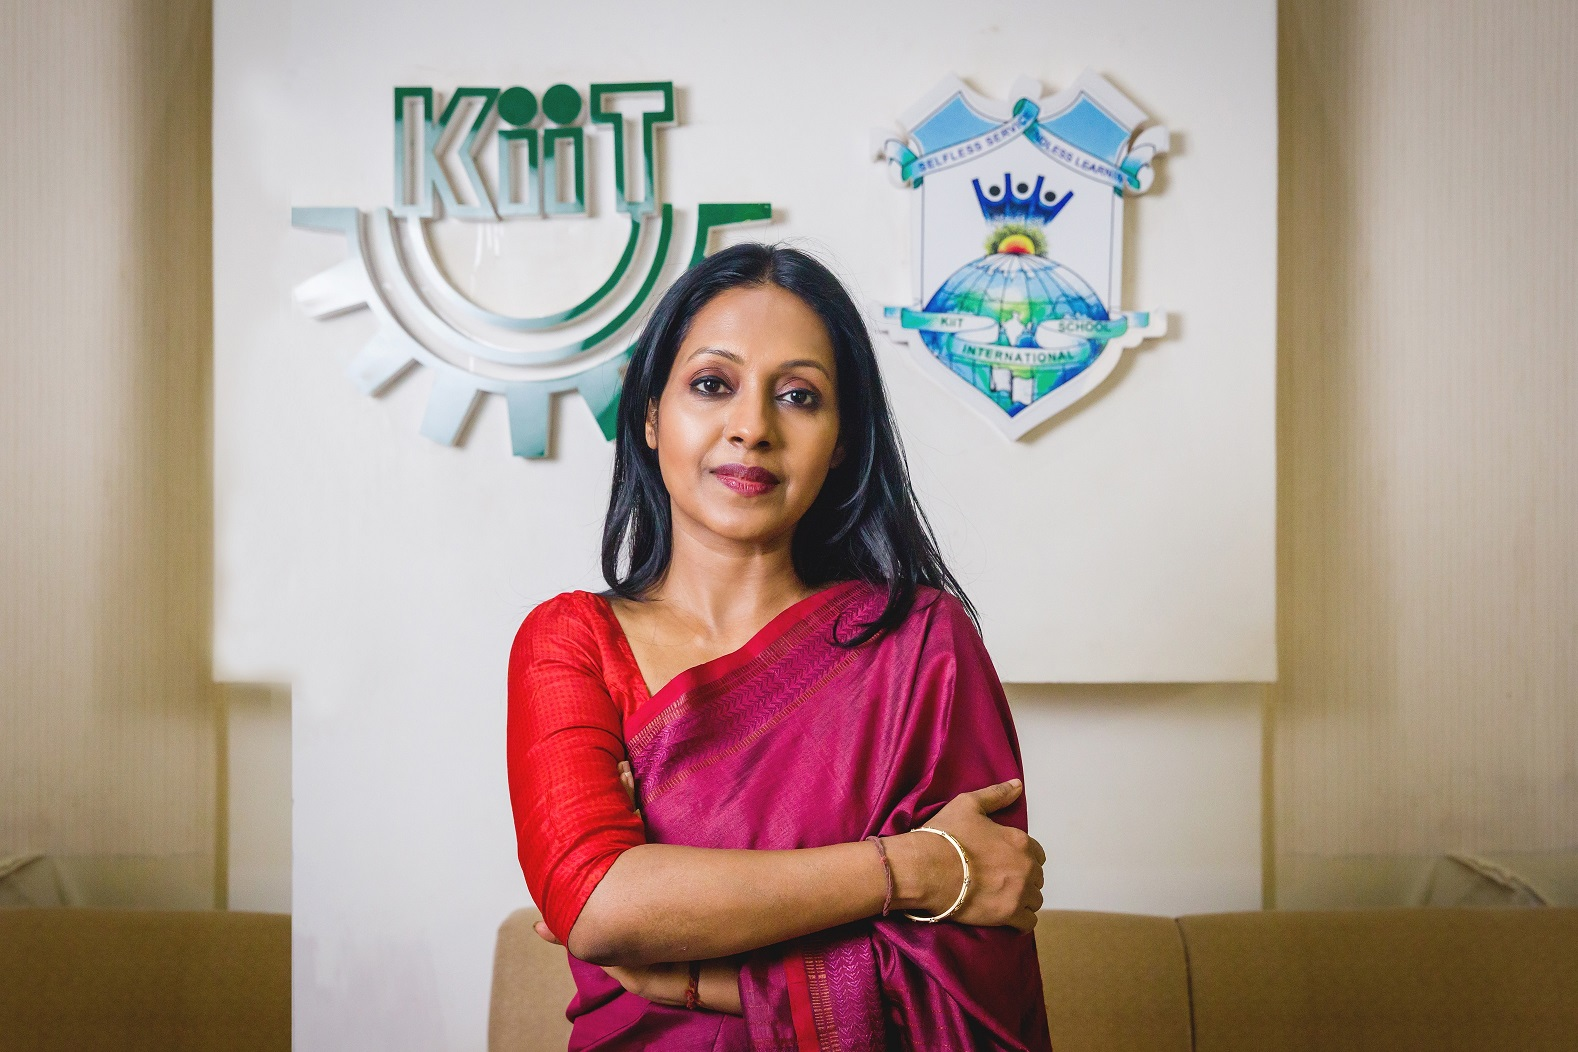 Dr. Mona Lisa Bal, Chairperson, KiiT International School